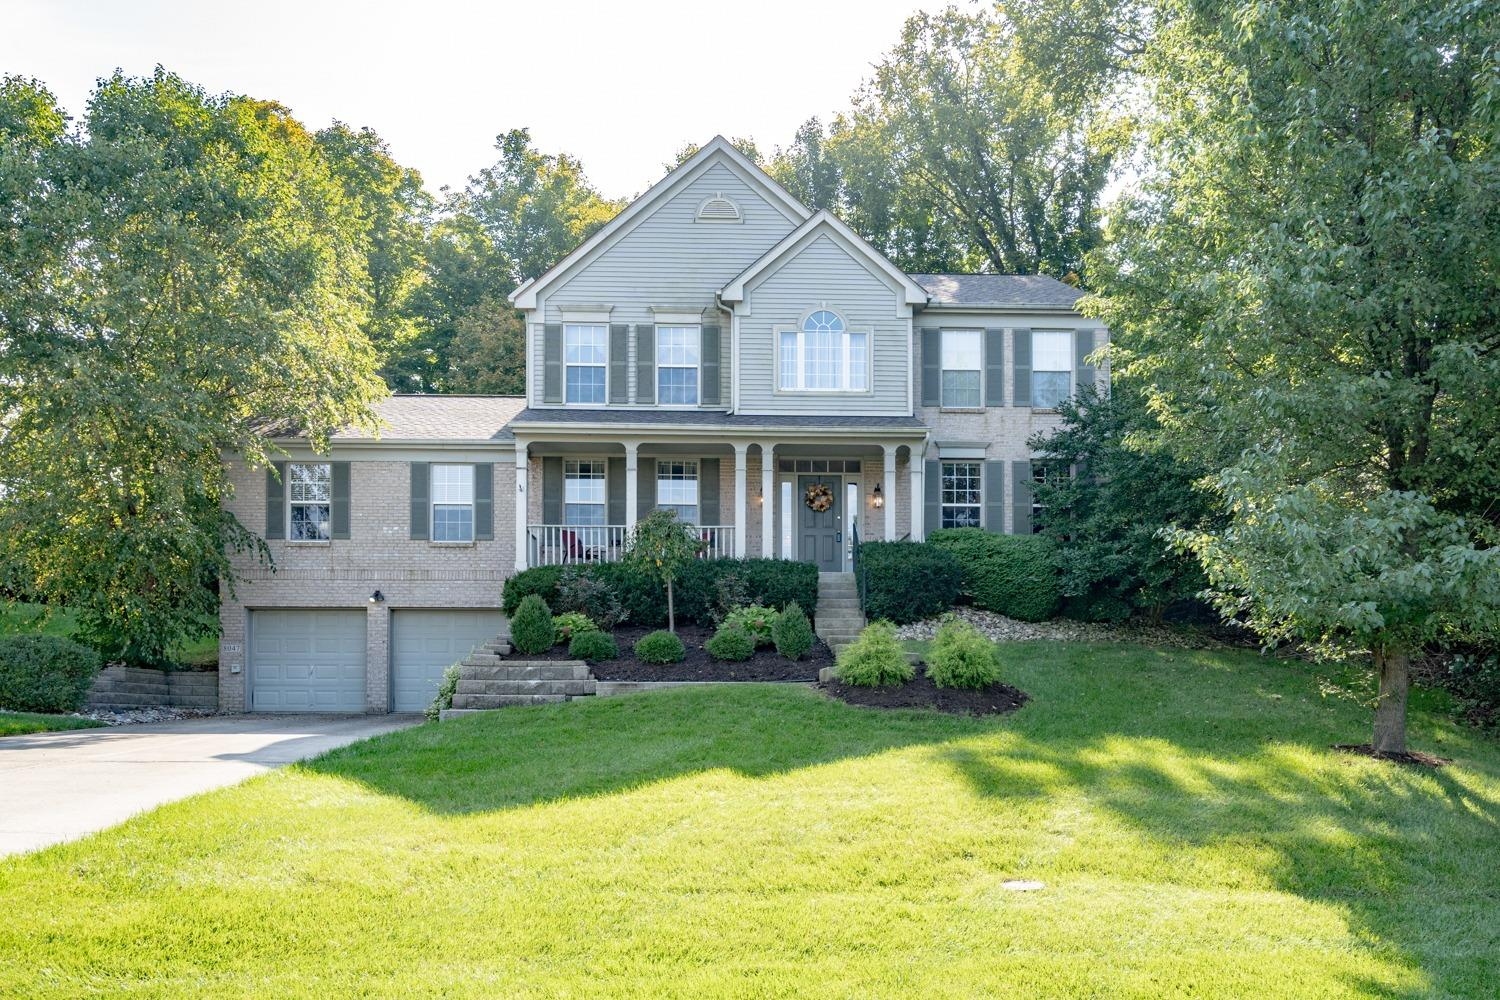 8047 Waldons Pond Dr Colerain Twp.West, OH